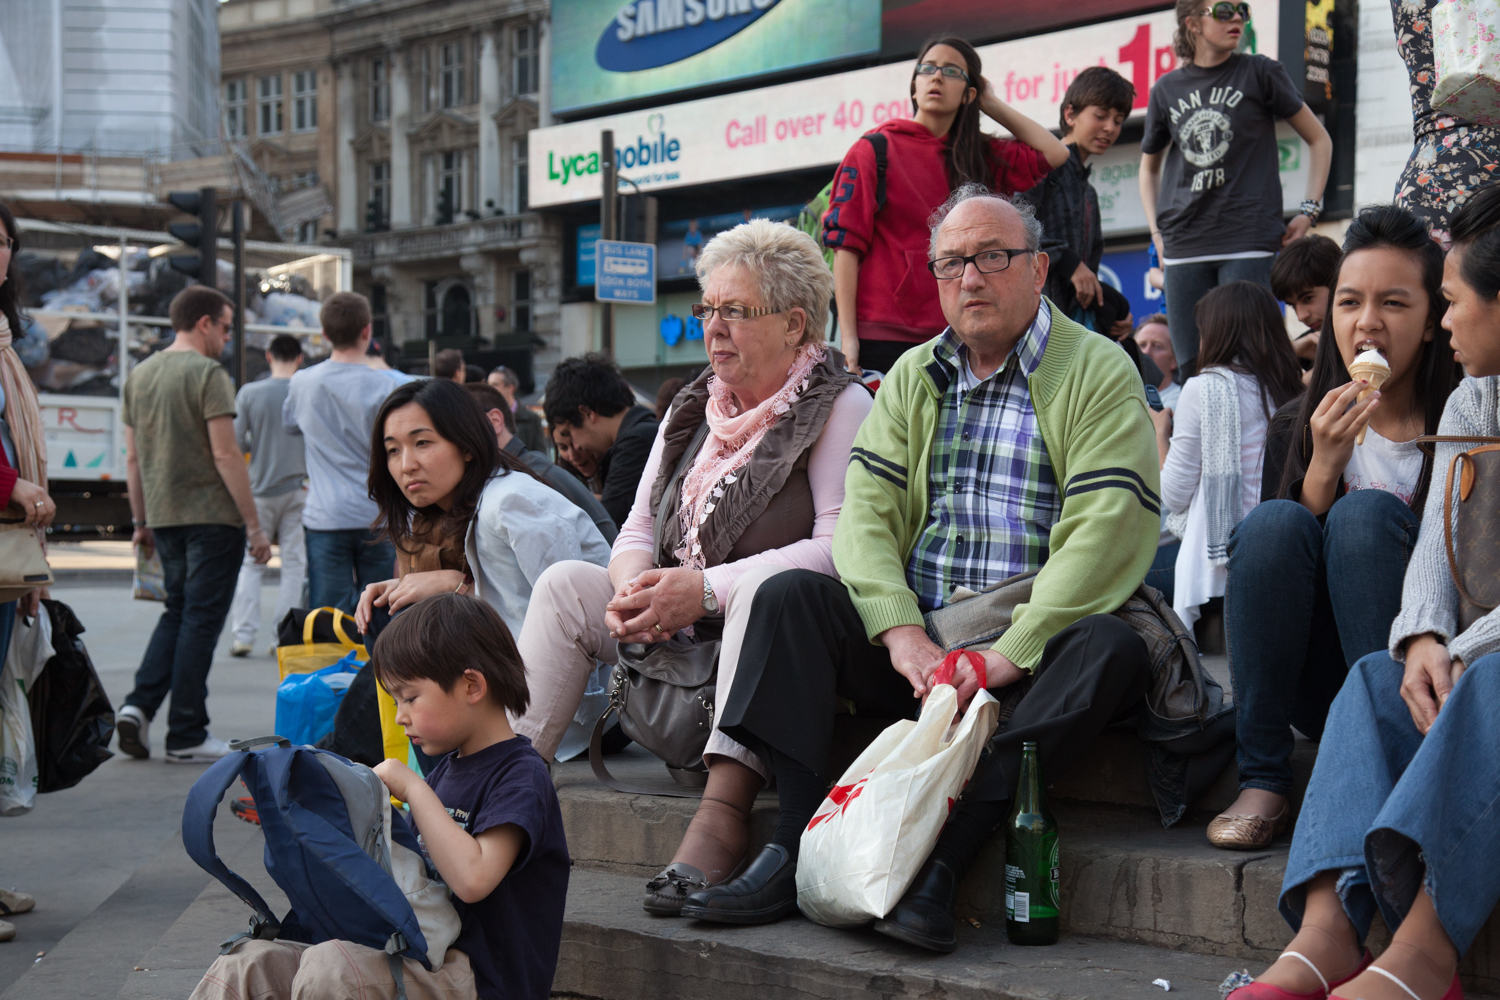 Tourists - Picadilly Circus, London - 2014